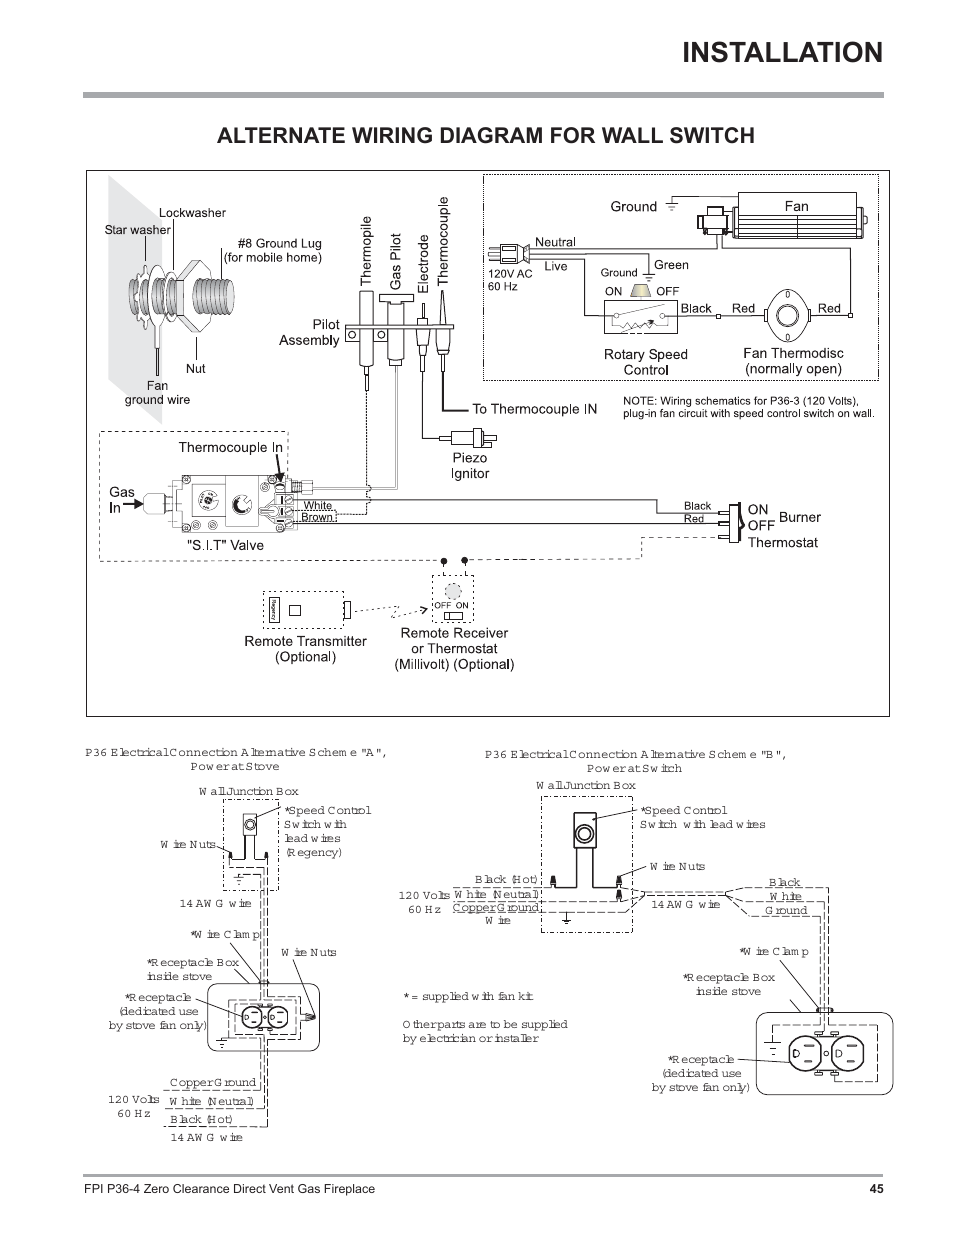 medium resolution of installation alternate wiring diagram for wall switch regency zero clearance direct vent gas fireplace